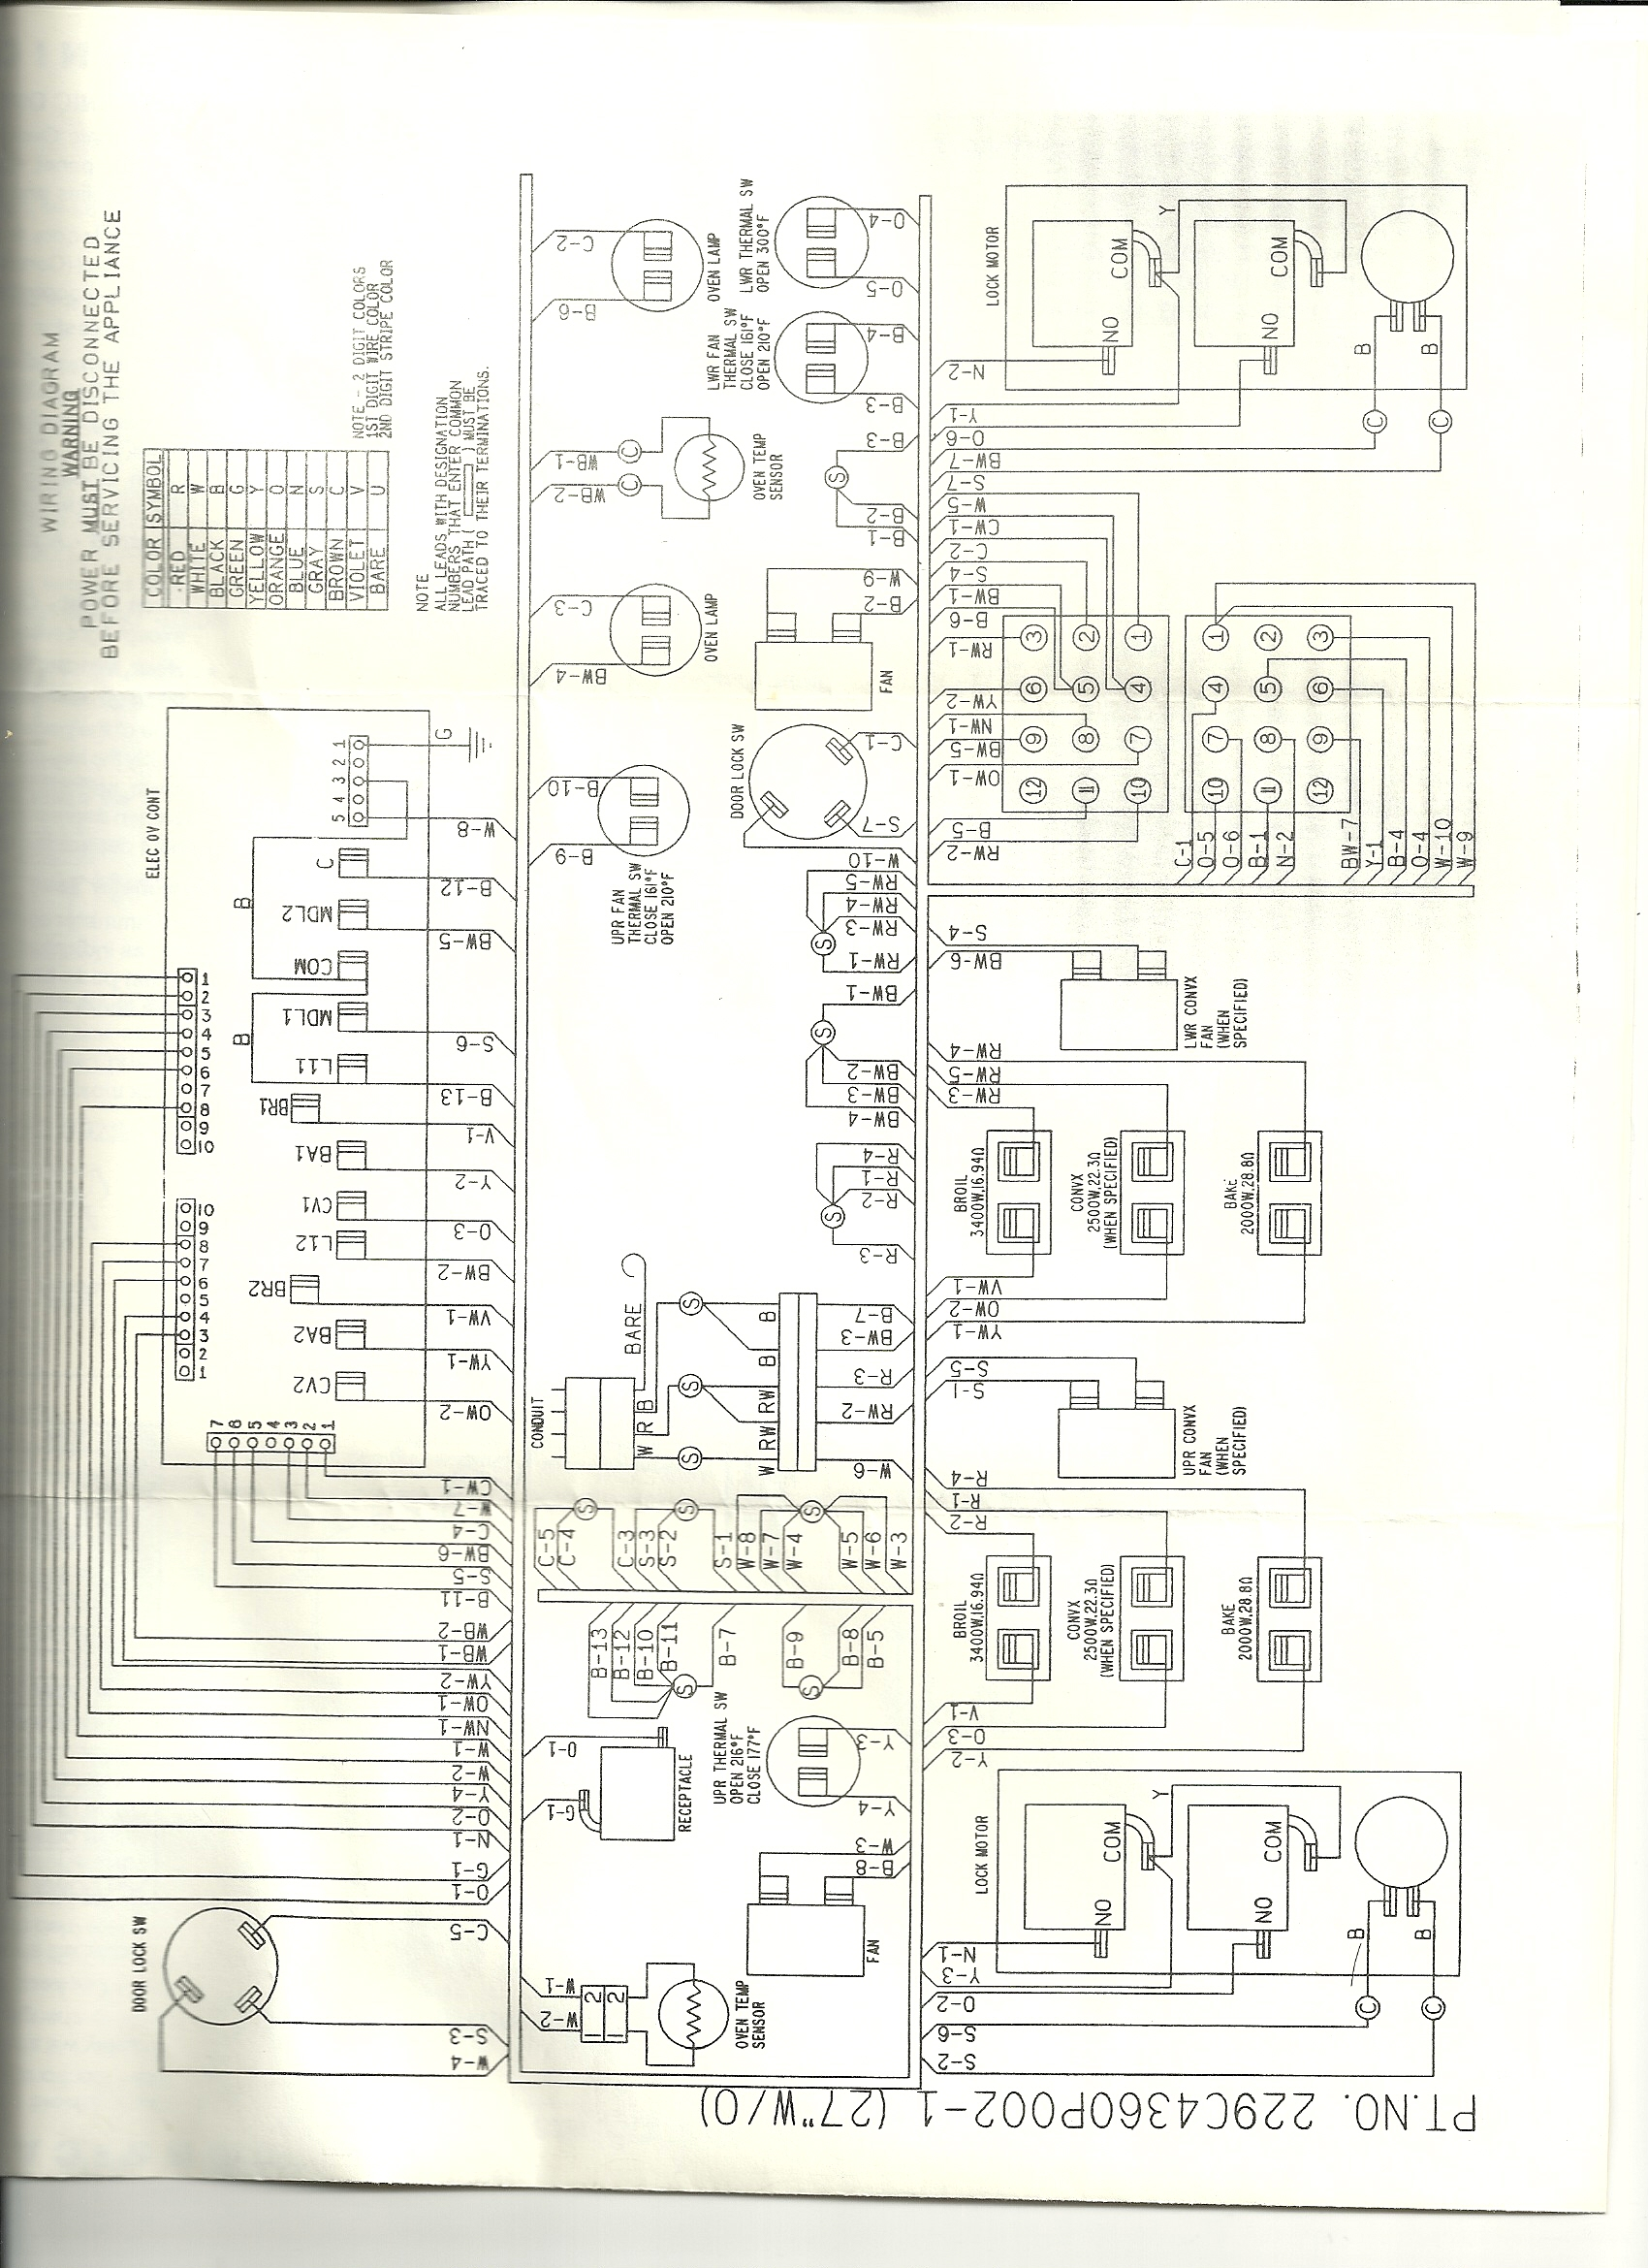 2012 09 13_005224_circuitdiagram_ge_range0001 ge oven wiring diagram 100 images wiring diagrams and ge electric range wiring diagram at suagrazia.org